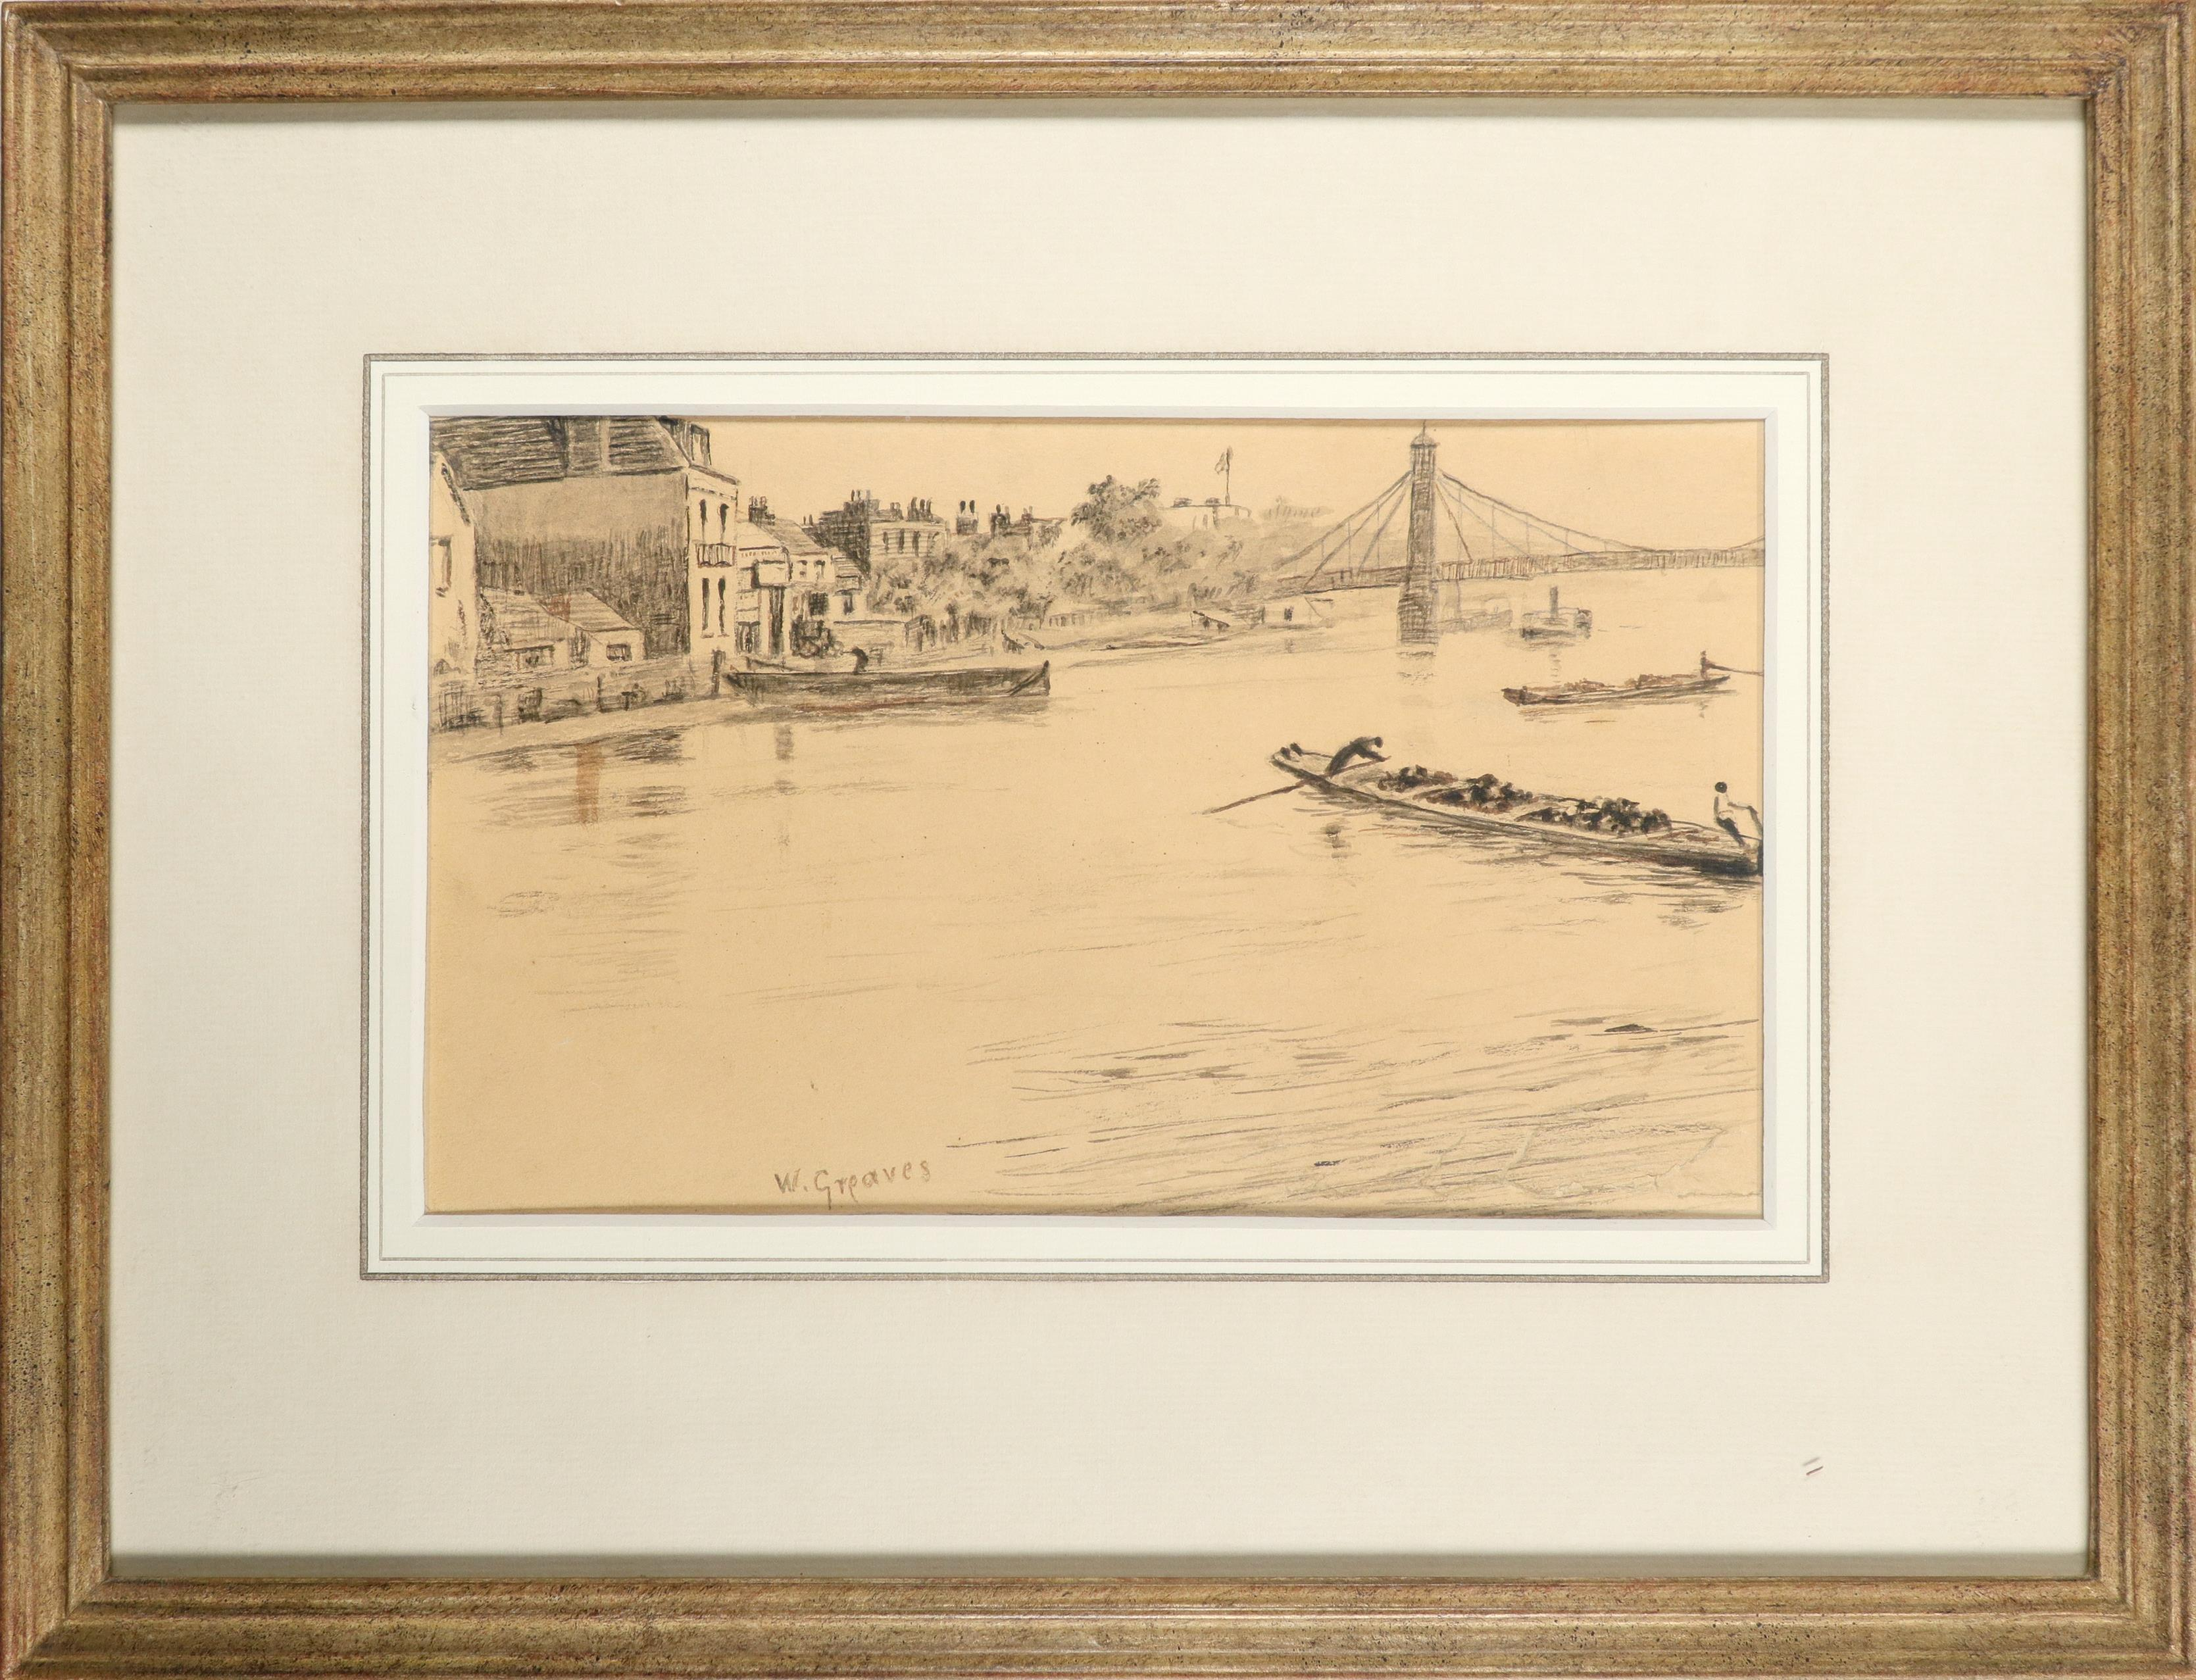 Walter Greaves (1846-1930) A view of the Thames at Battersea Bridge Signed W.Greaves (lower left) - Image 2 of 3